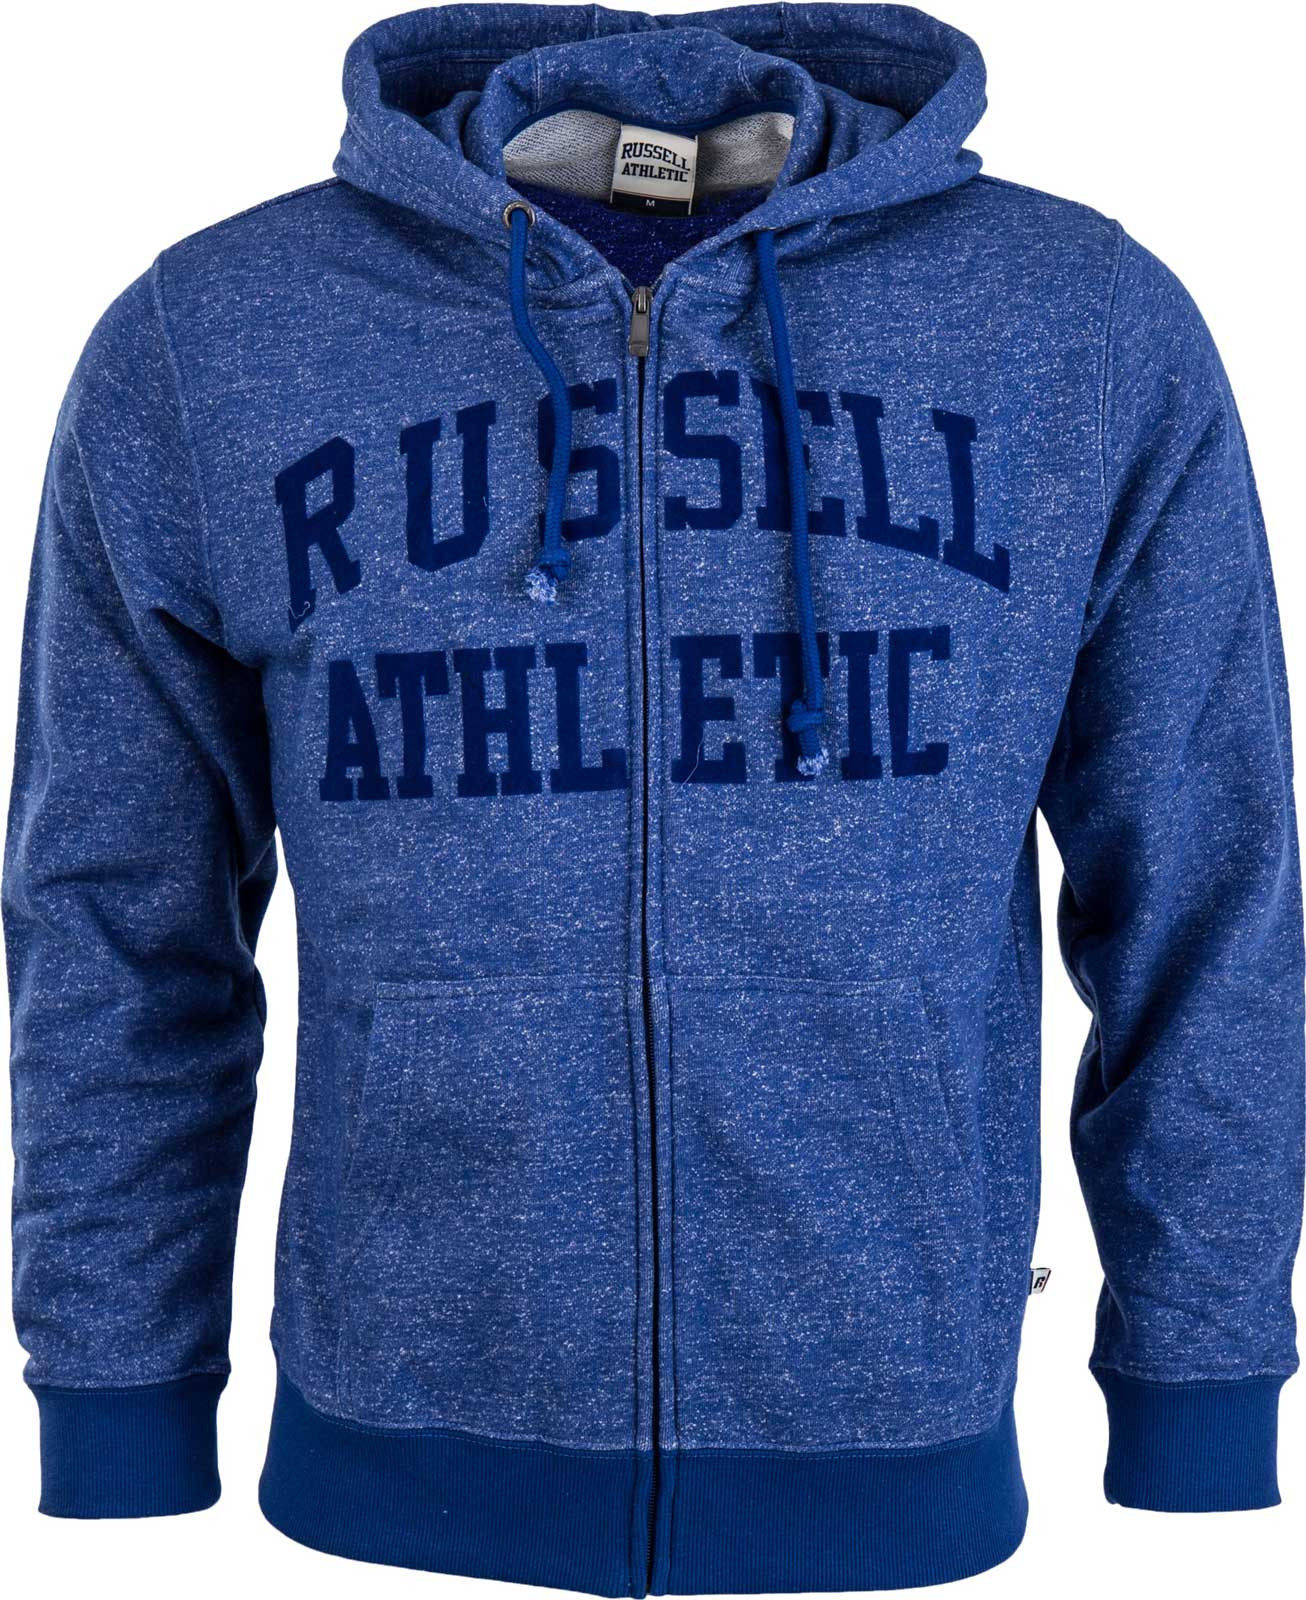 Russell Athletic ZIP THROUGH HOODY WITH FLOCK ARCH LOGO. Pánská mikina fa4a83904c2